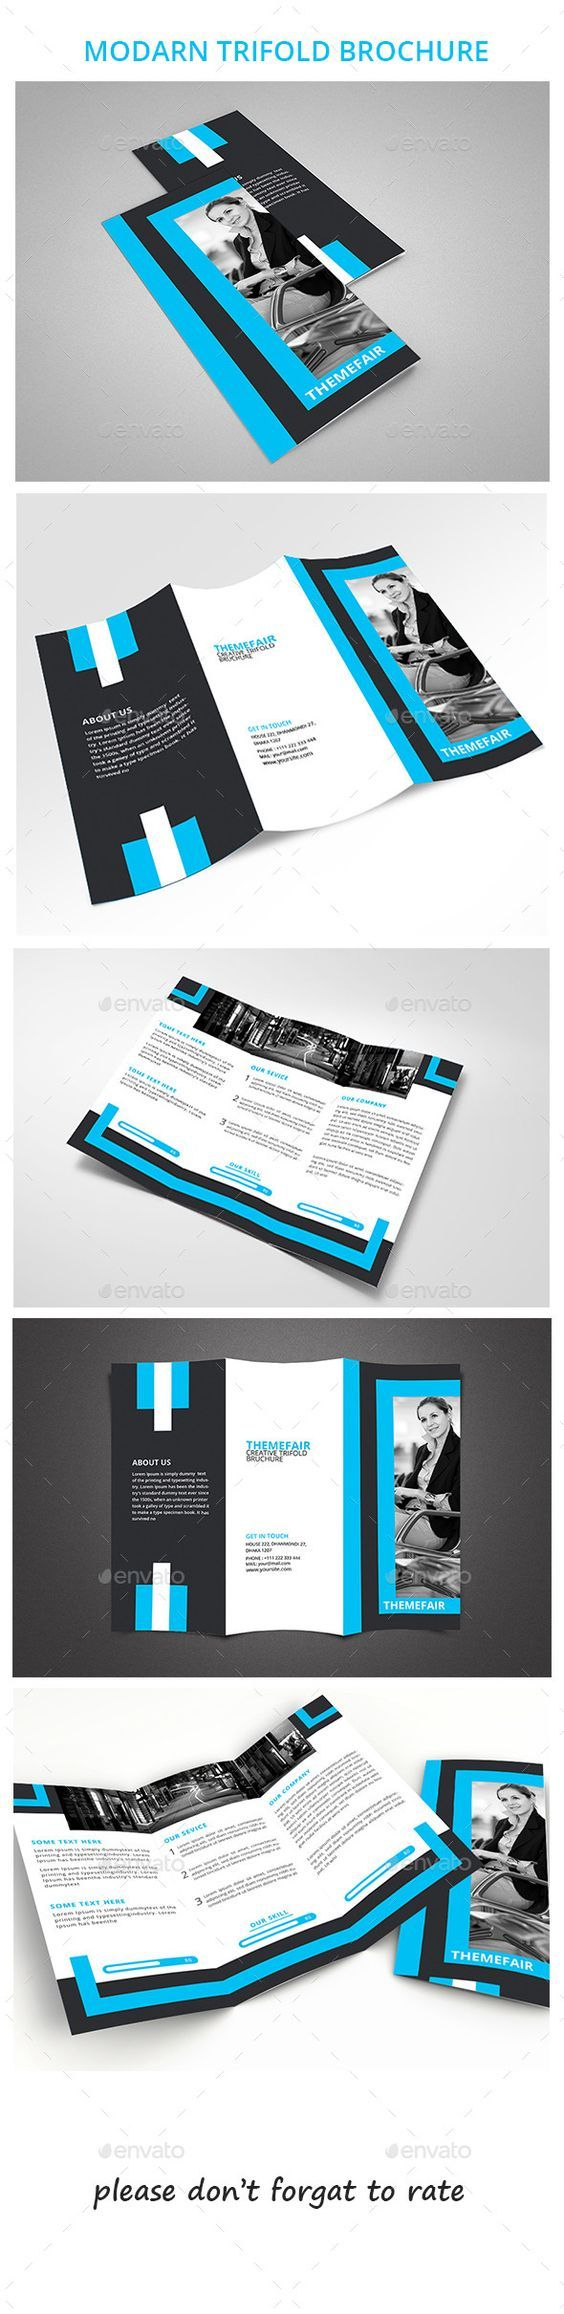 A Modern Tri Fold Brochure, With Plenty Of Room To Thoroughly Describe The  Company